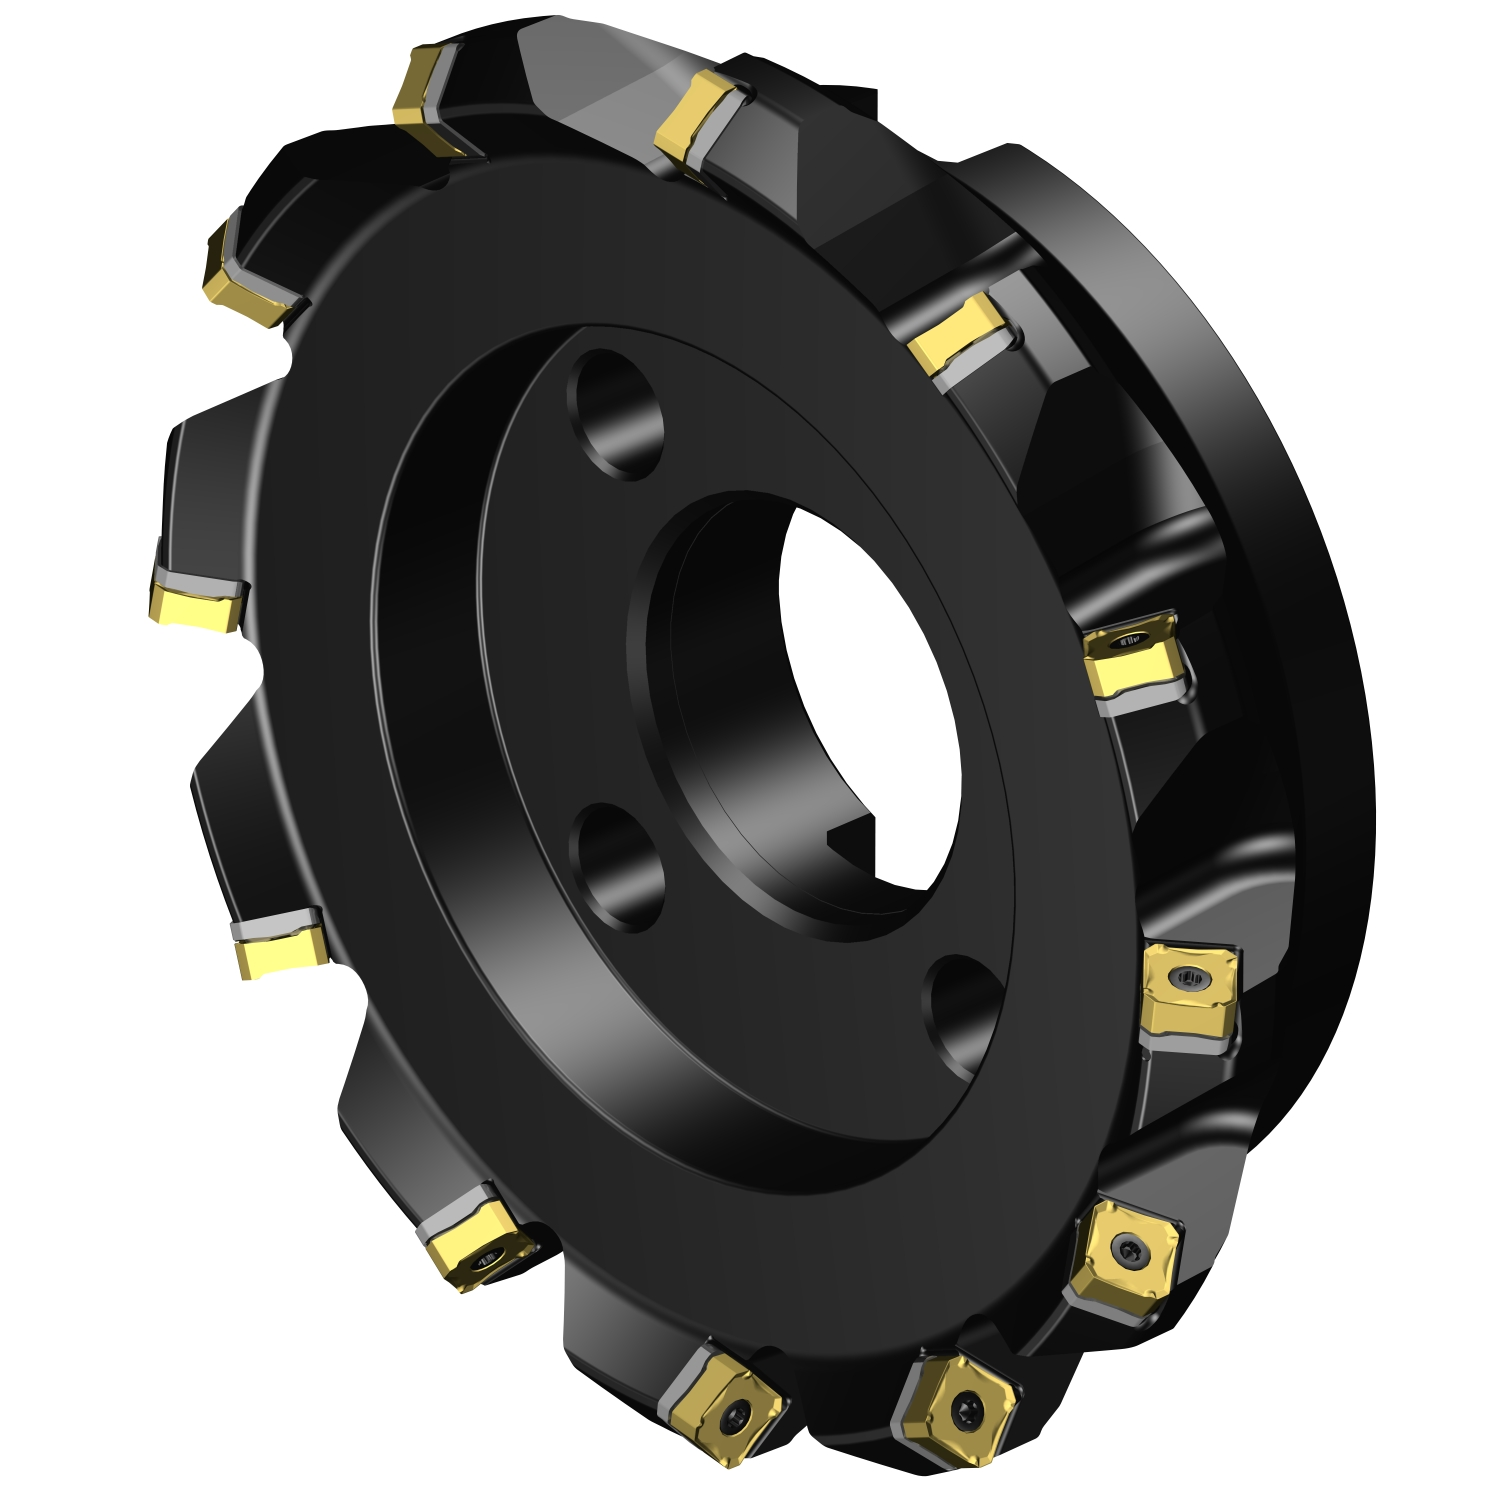 A345-203R63-13M - Holders, Adapters & Heads